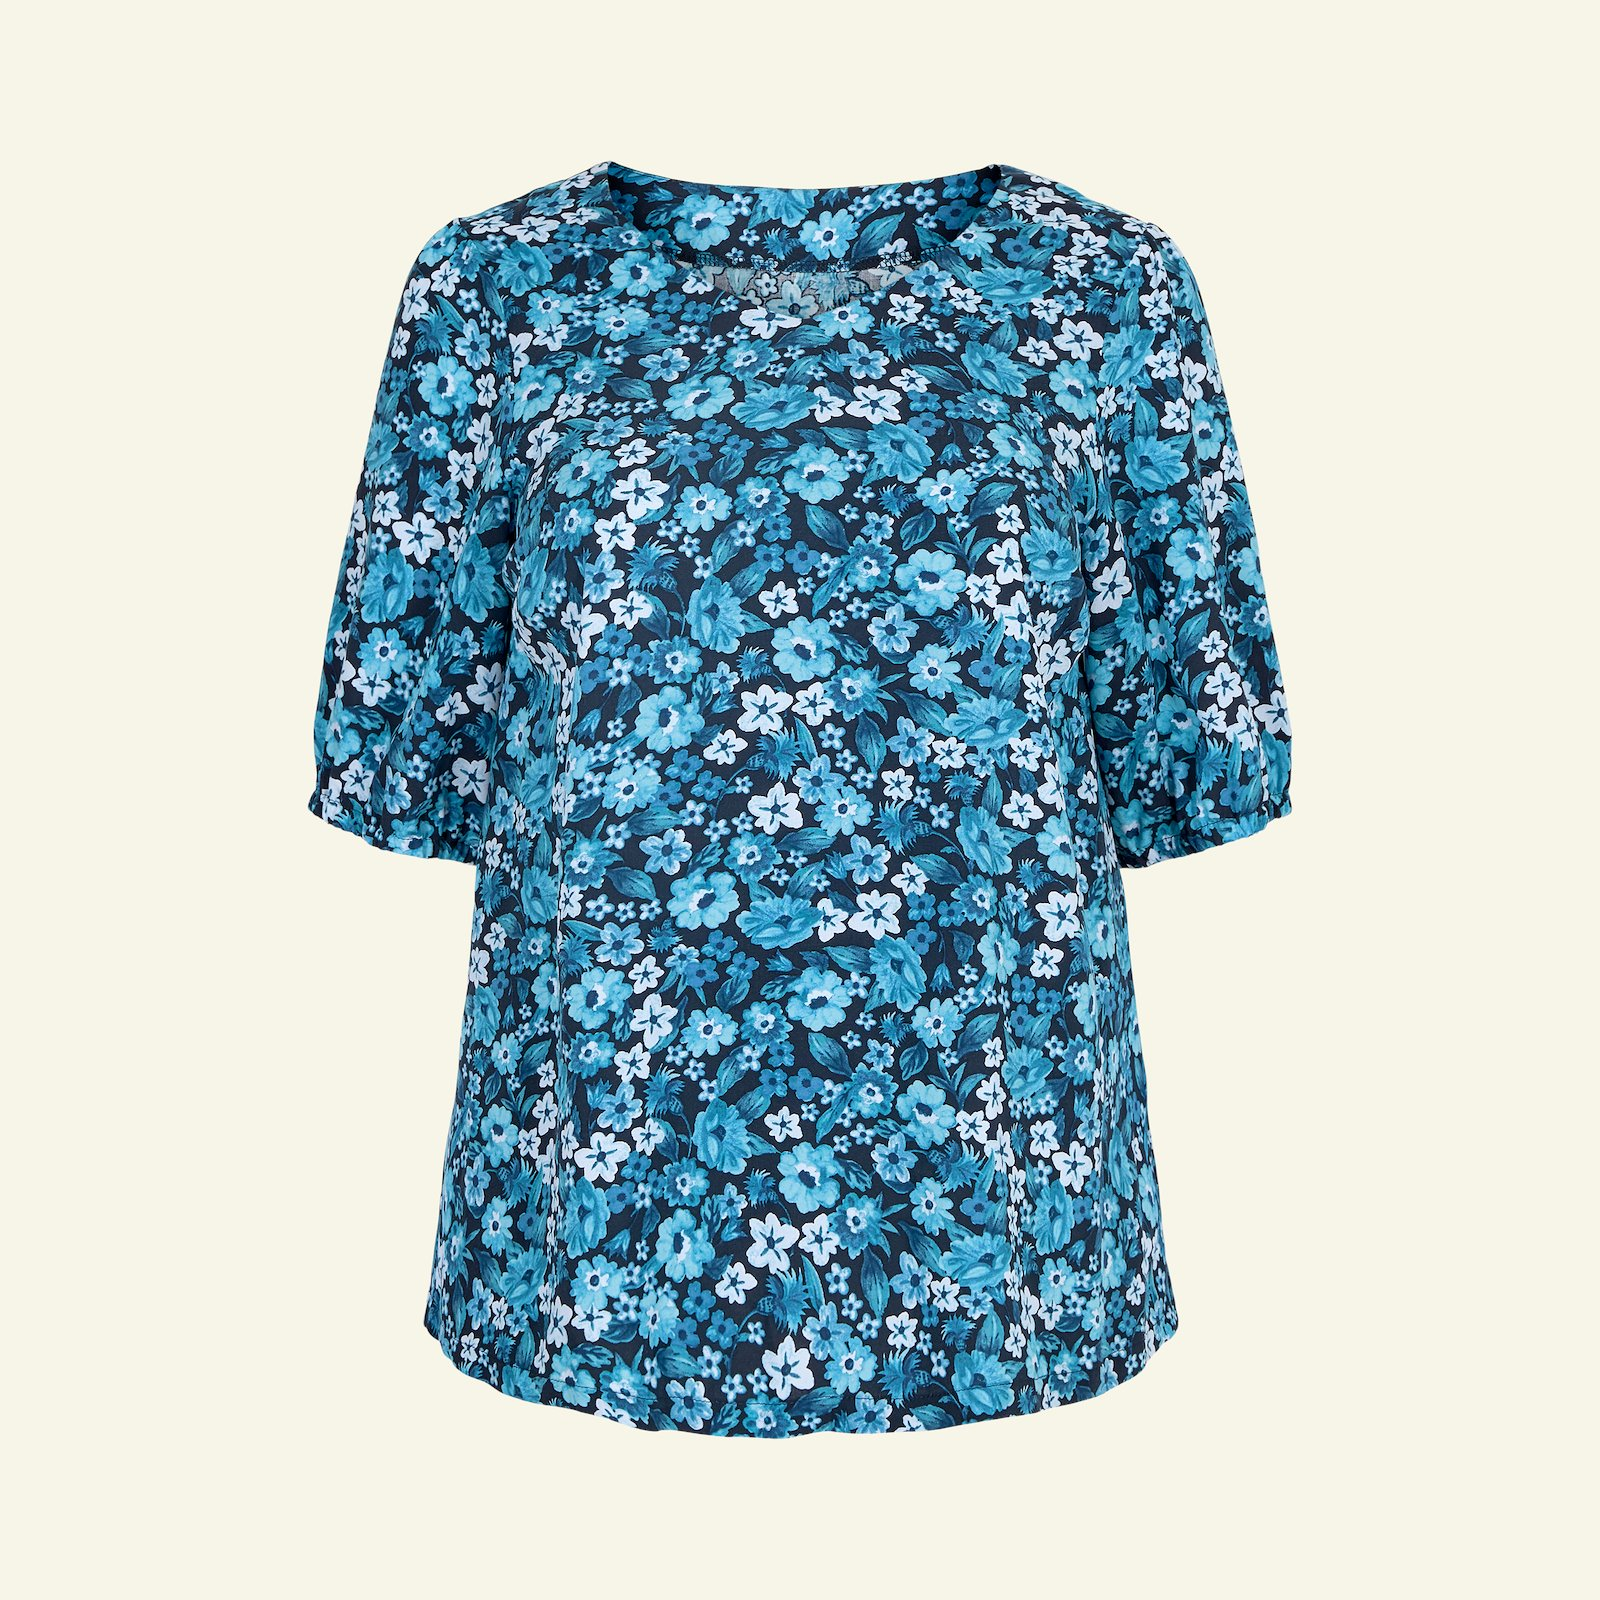 Blouse with long and short sleeve, 58/30 p72006_710656_sskit